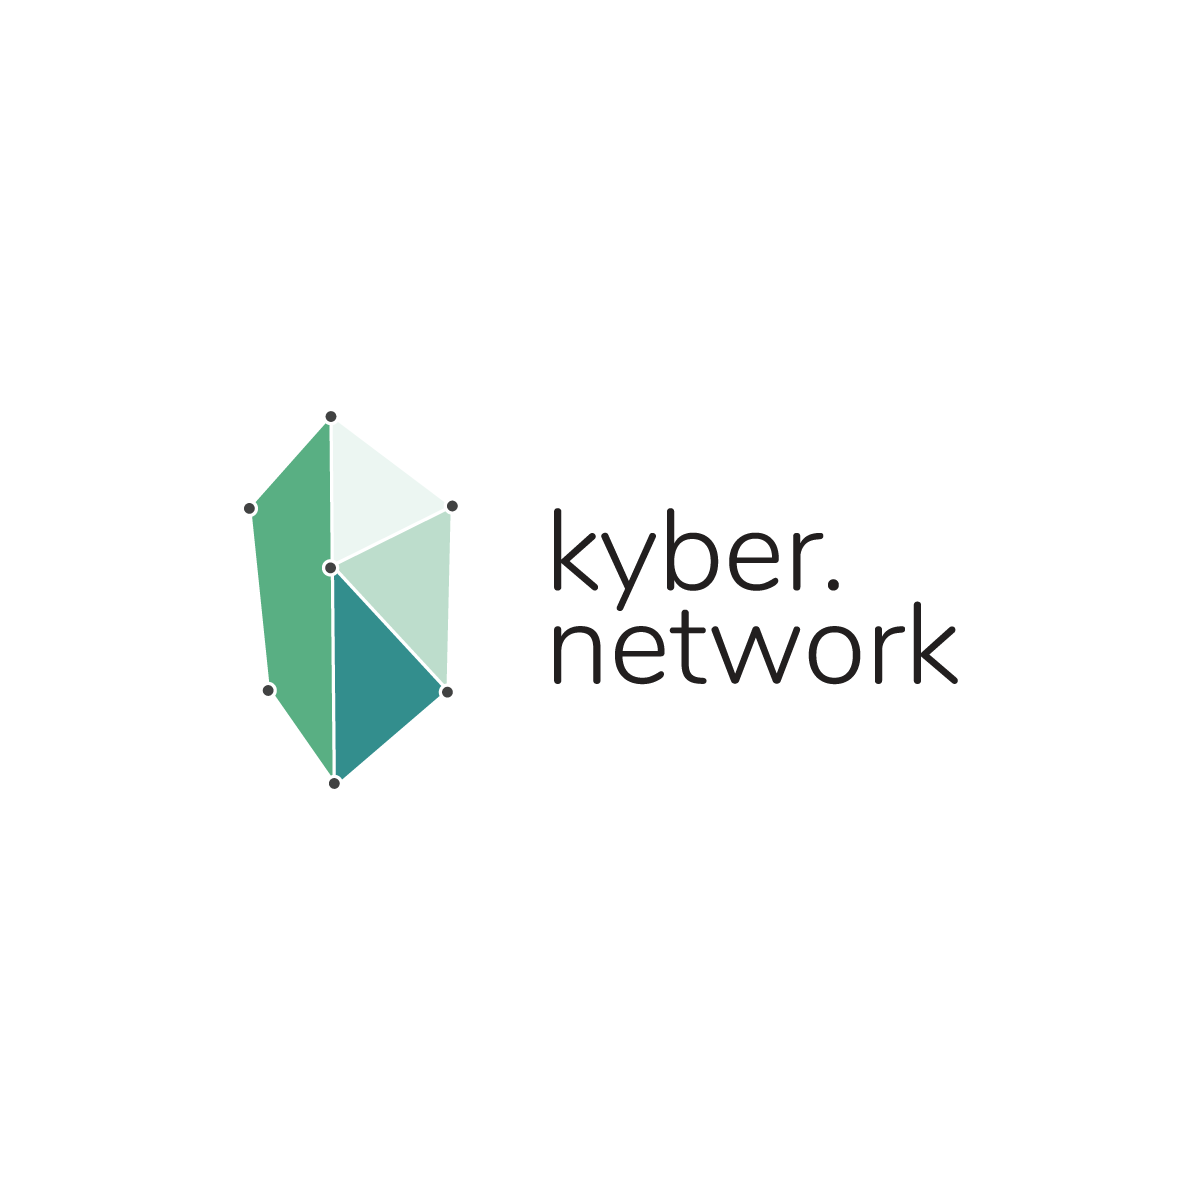 Kyber Network – Instant Exchange With No Fees